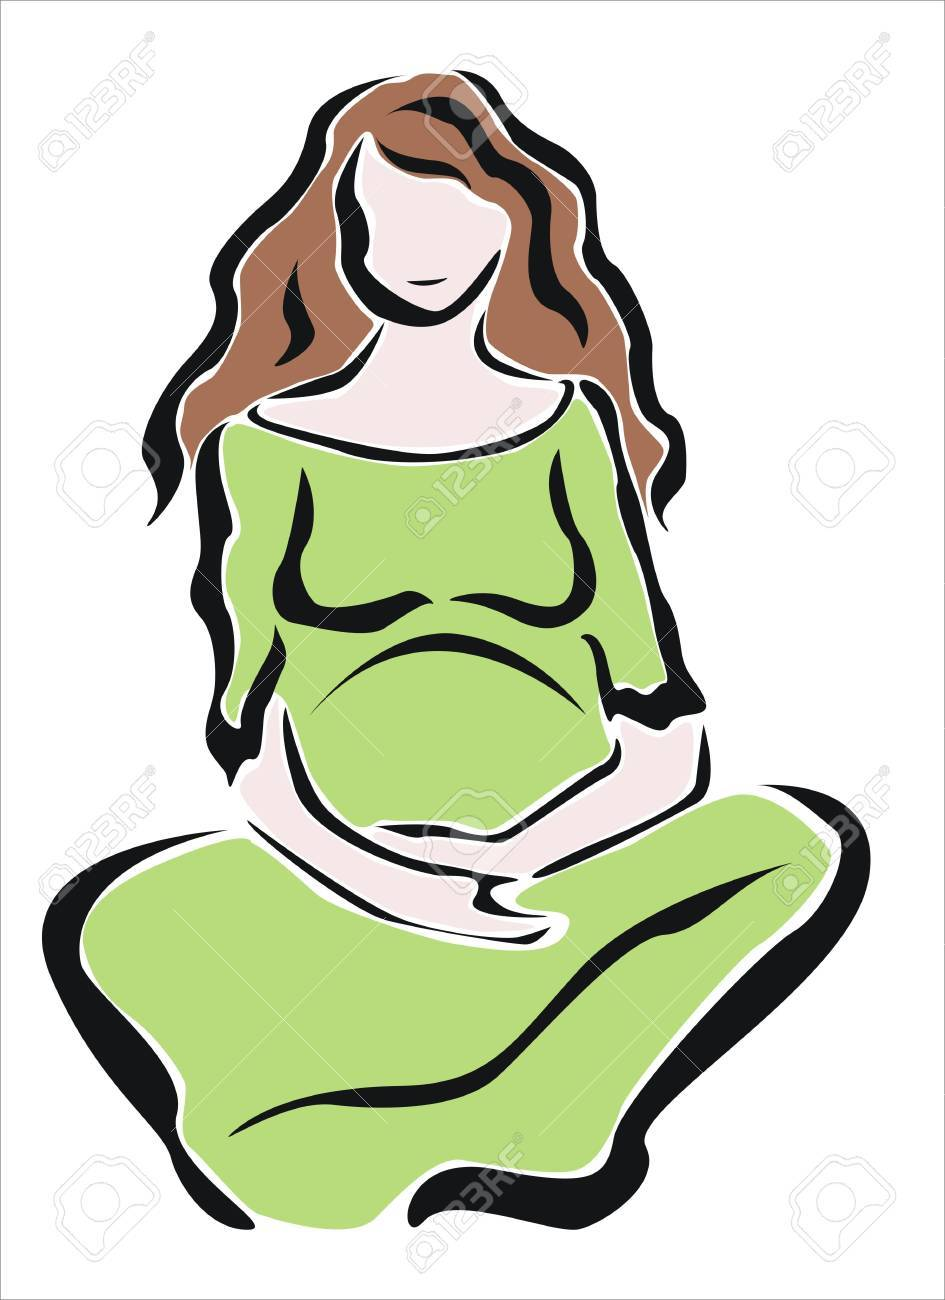 945x1300 Pregnant Woman Sitting Quietly Royalty Free Cliparts, Vectors,